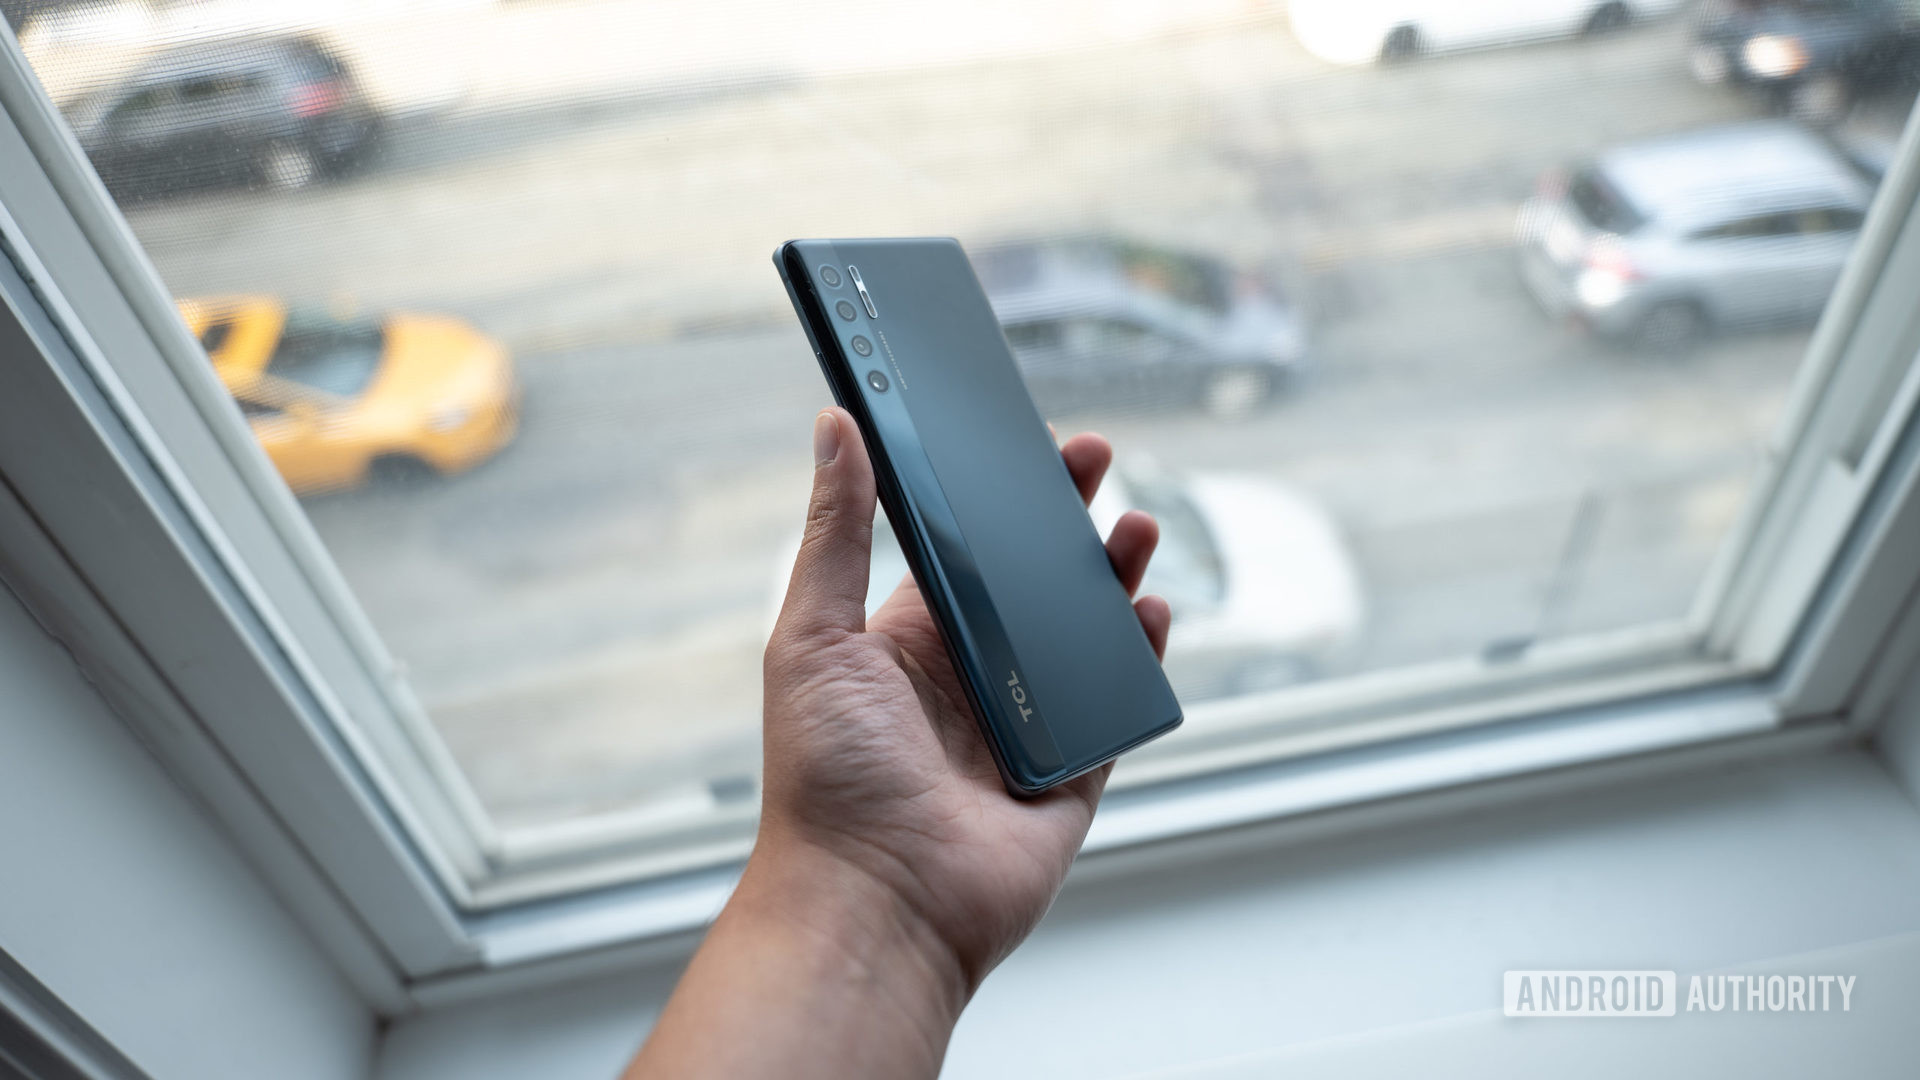 A person holding the TCL 20 Pro in their hand, in front of a window, with the back of the phone visible.